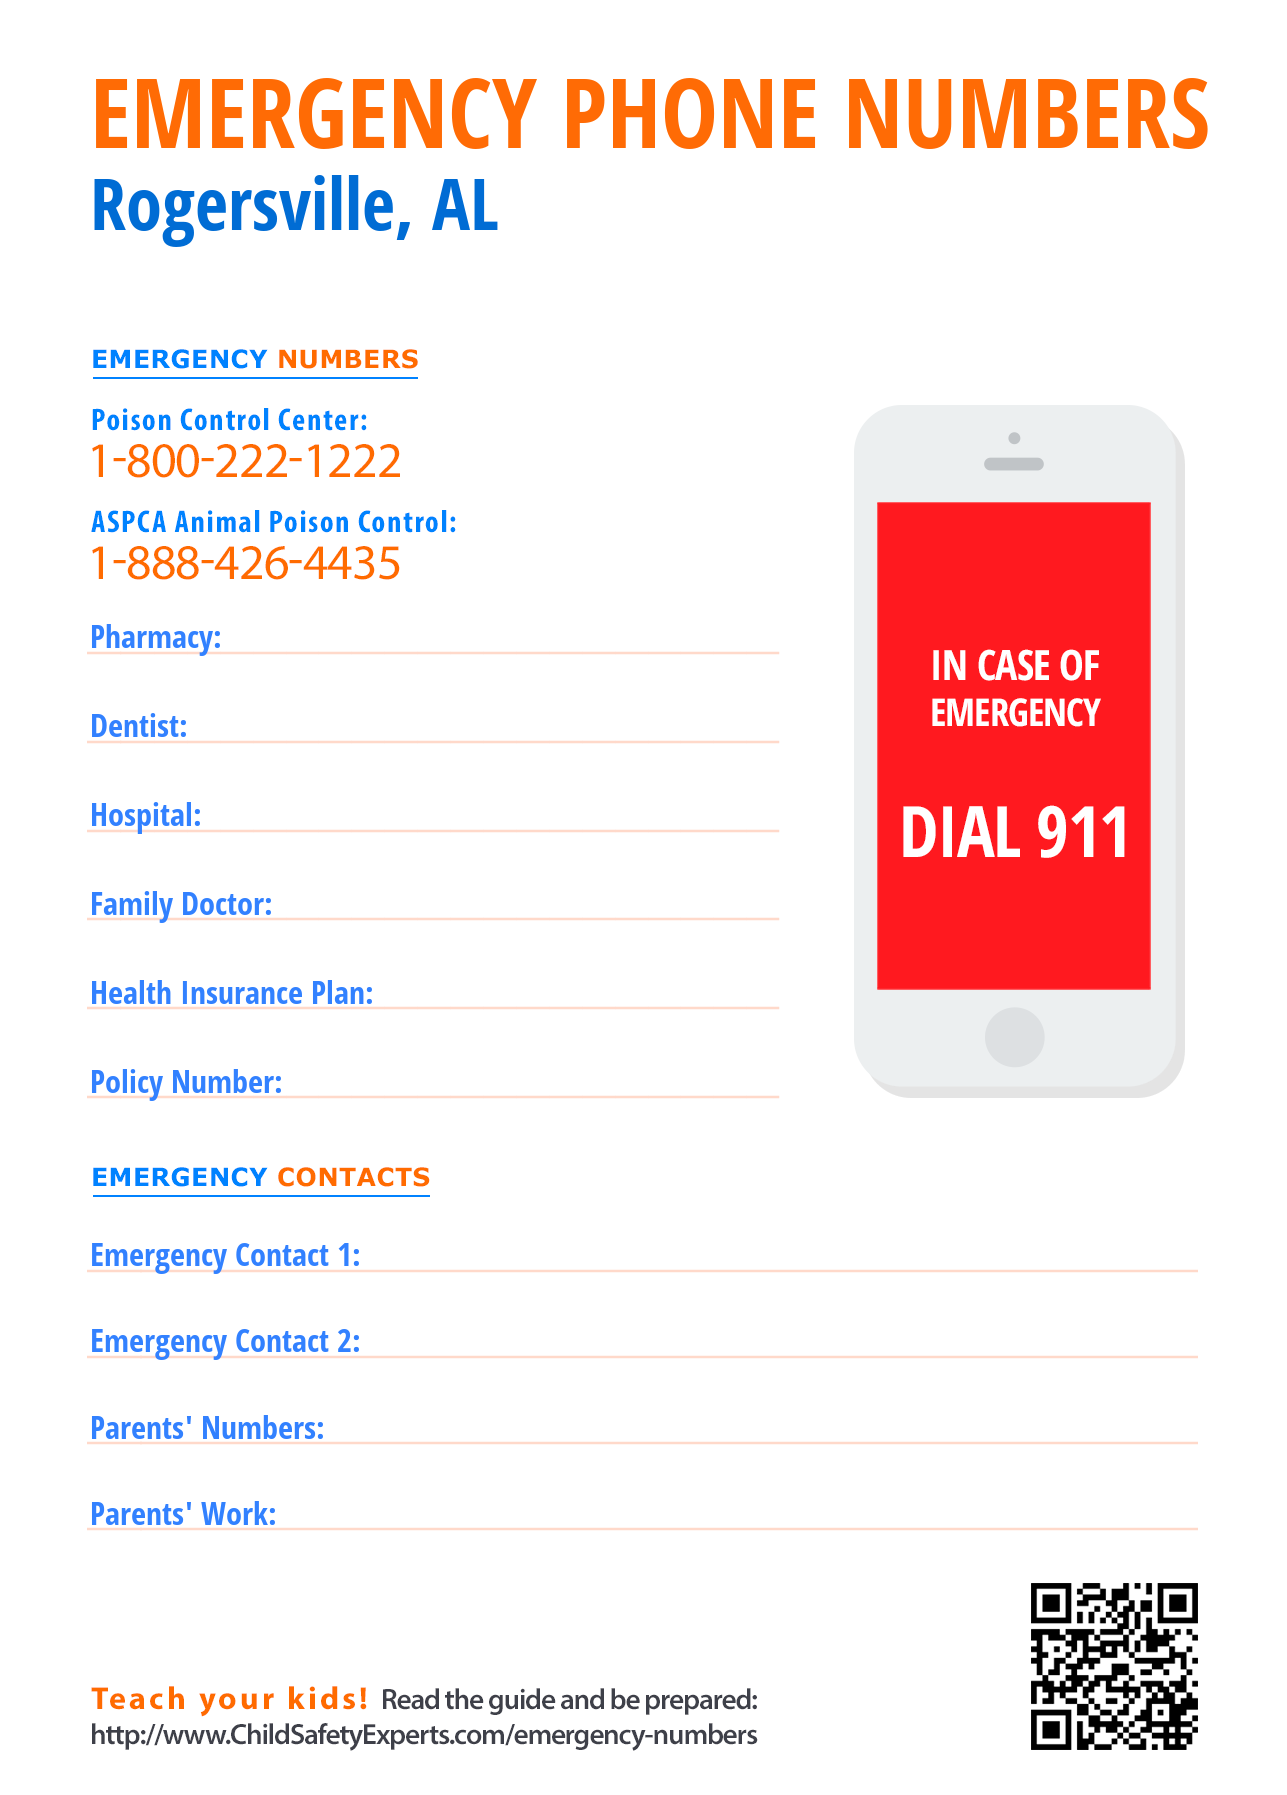 Important emergency phone numbers in Rogersville, Alabama